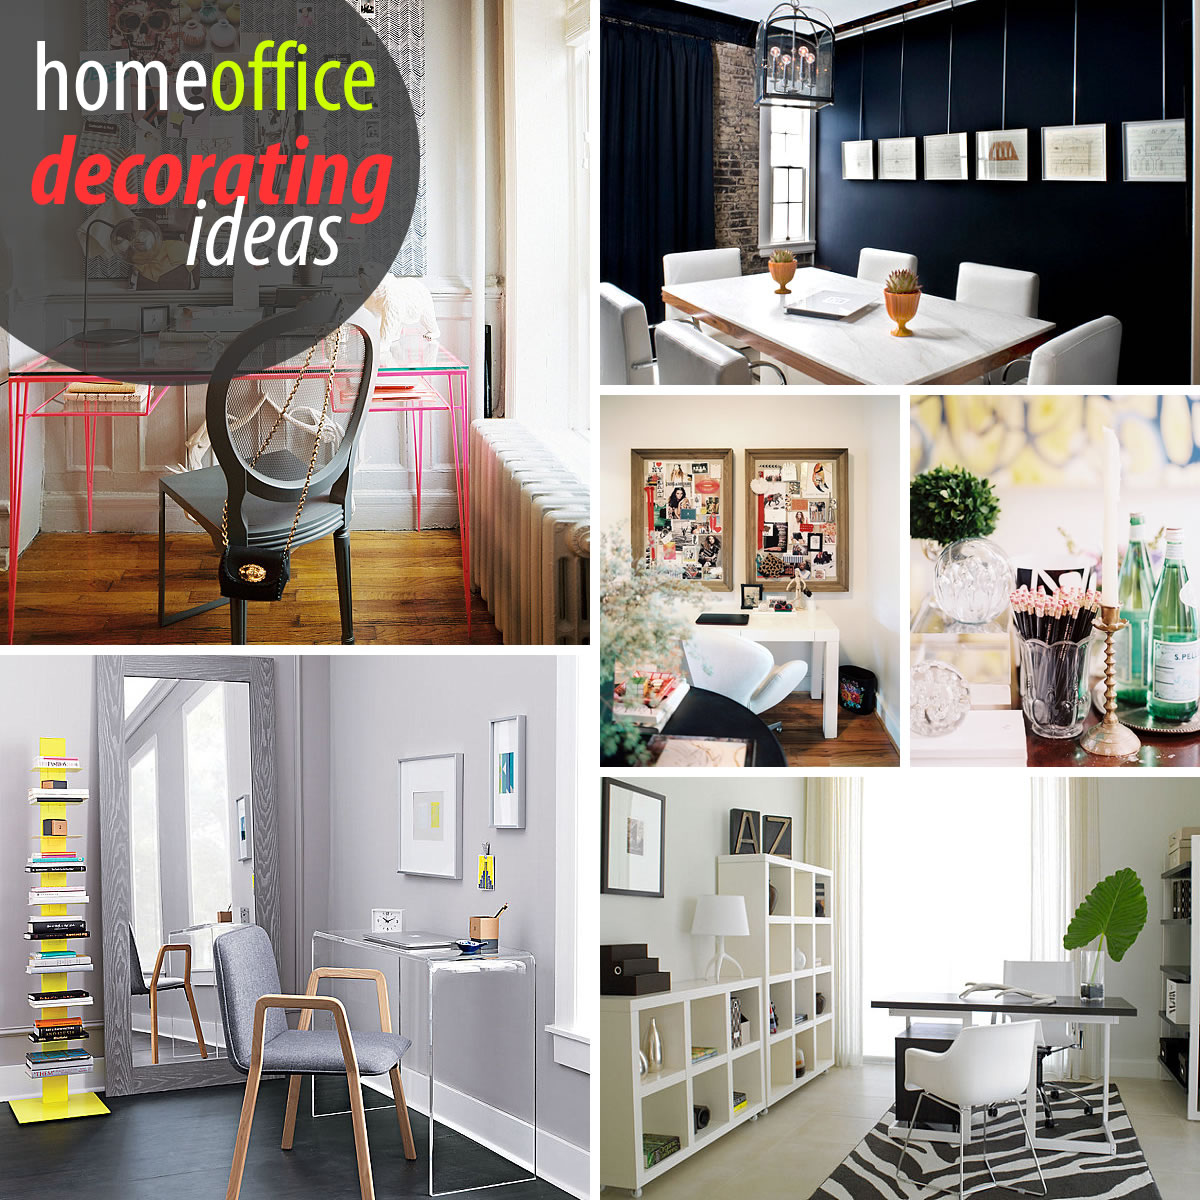 Creative home office ideas bill house plans for Creative home designs